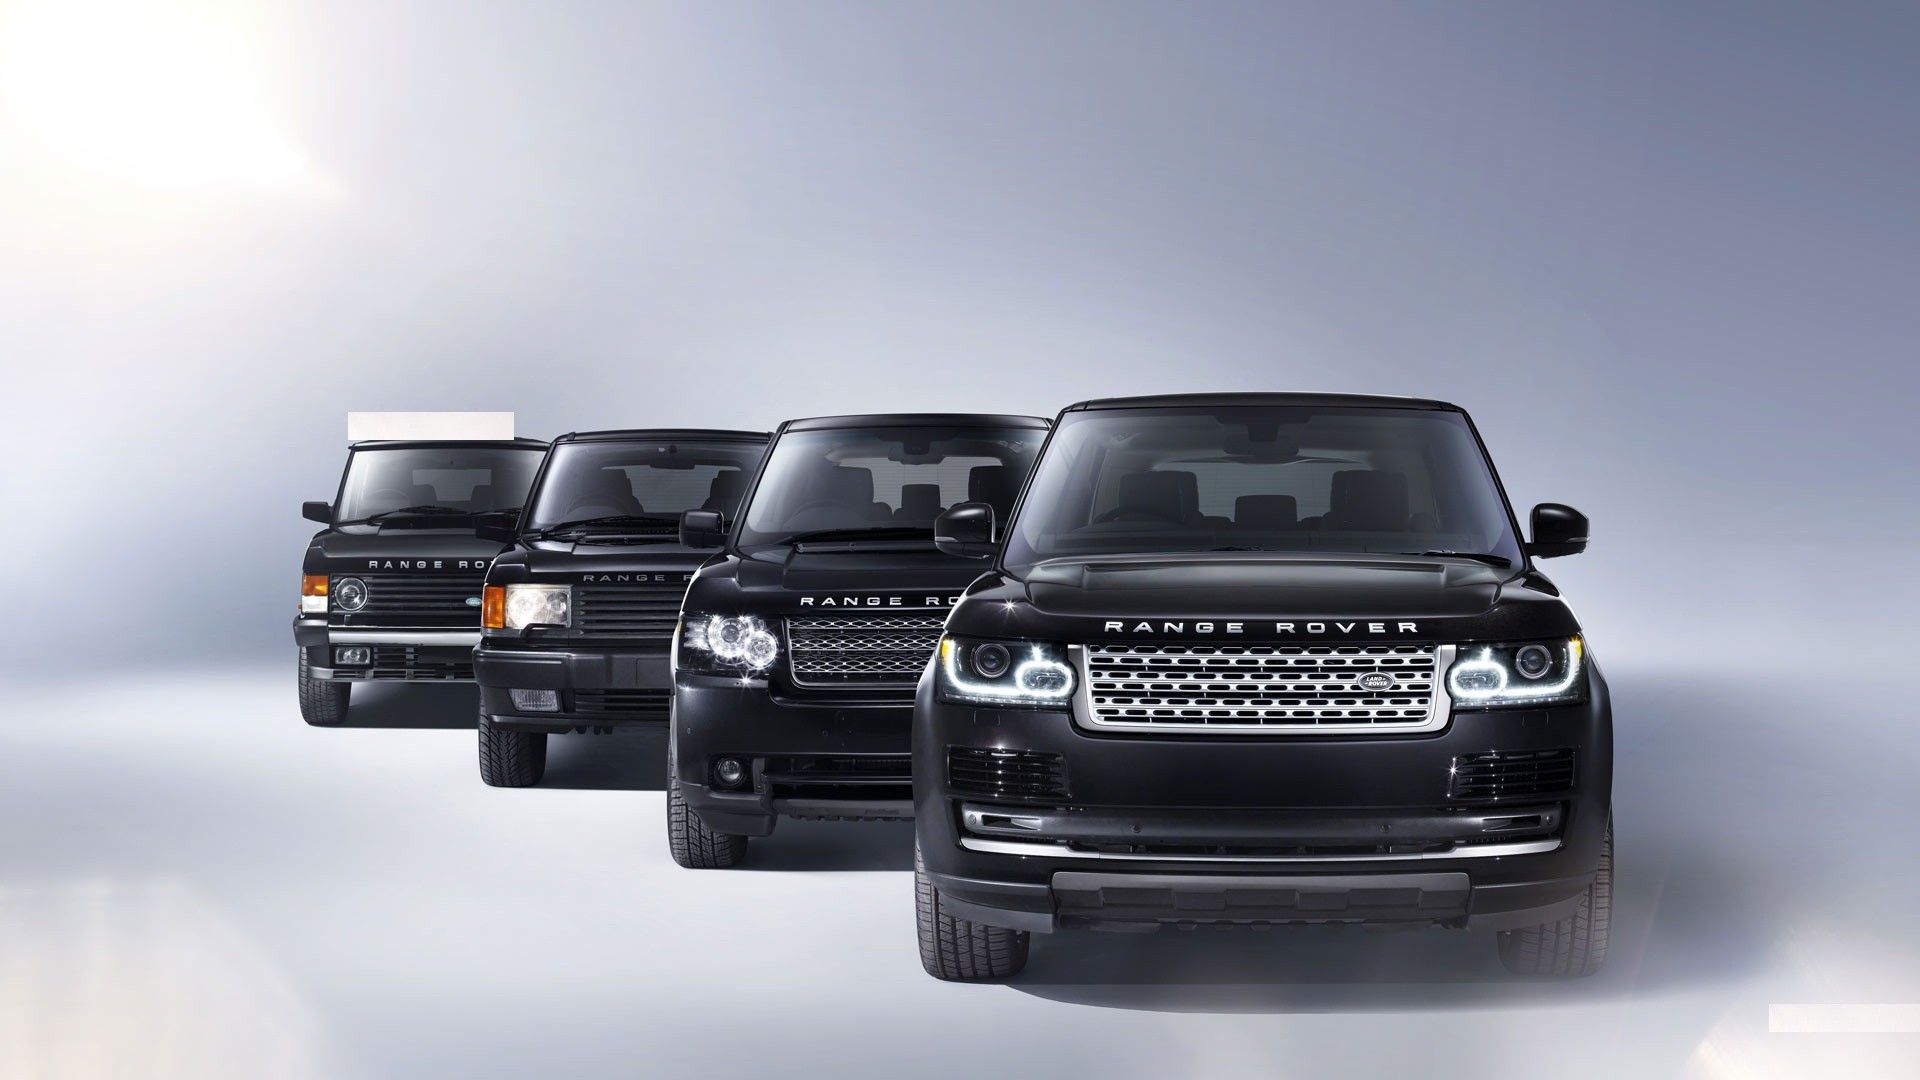 HD Range Rover Wallpapers Range Rover Sport Background Images For 1920x1080